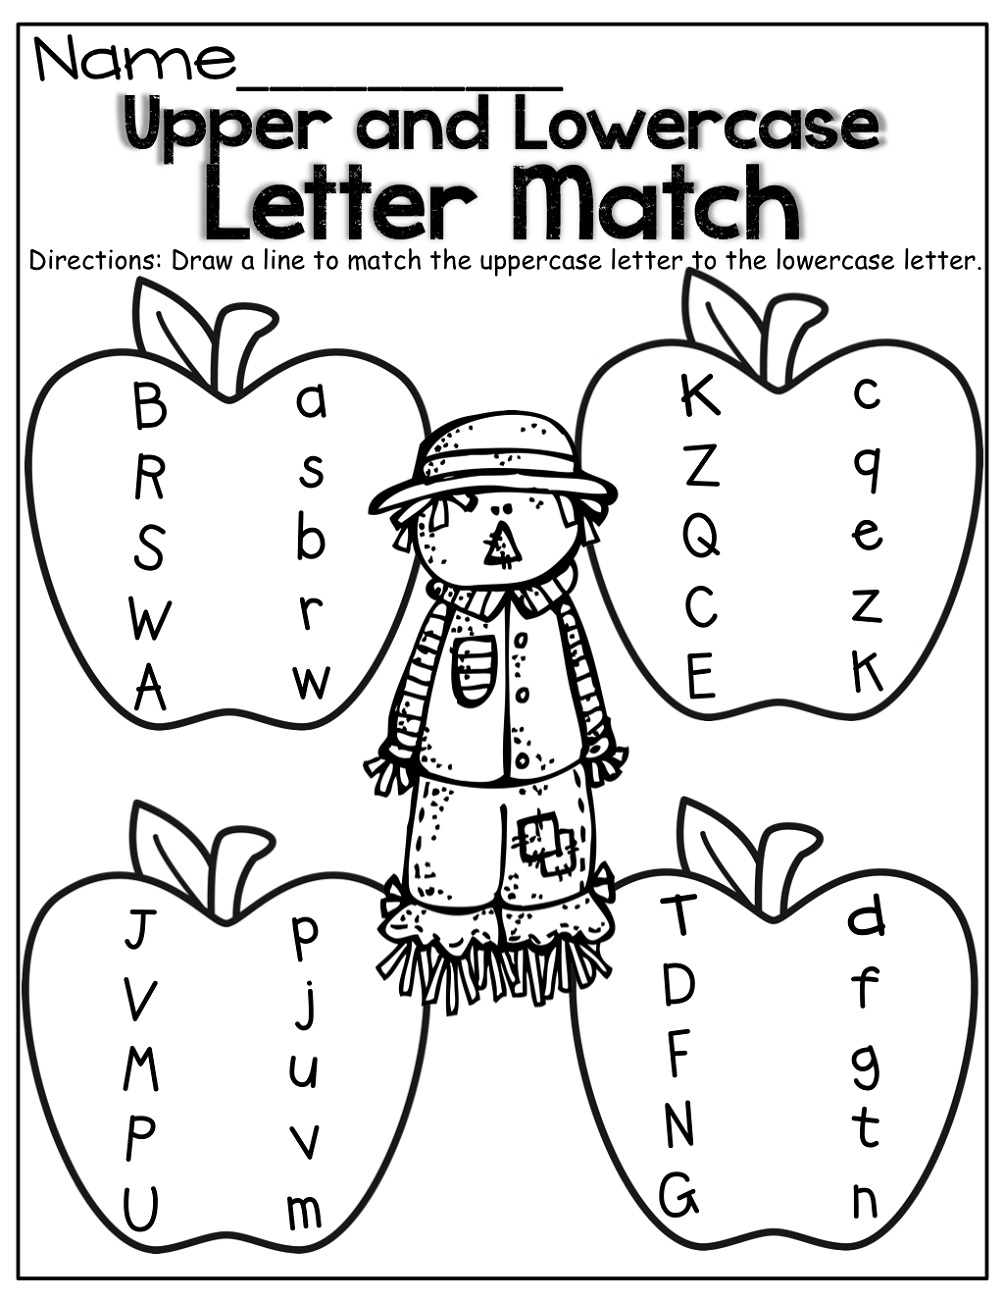 Matching Uppercase and Lowercase Alphabet